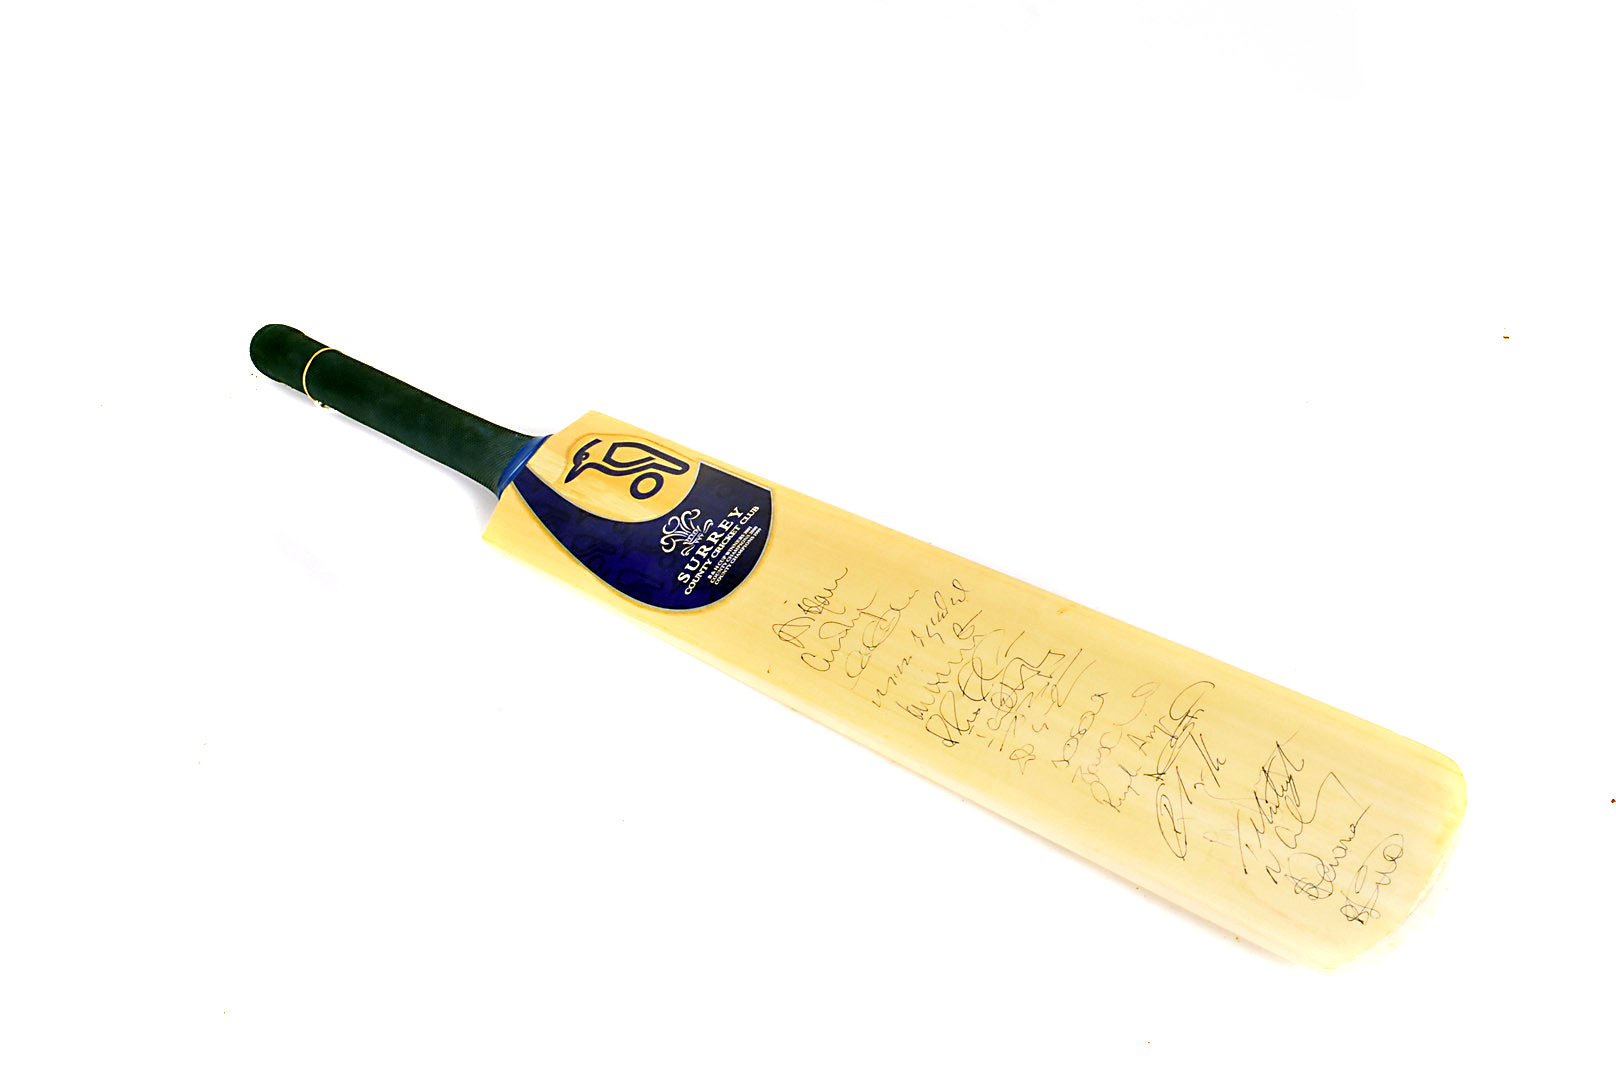 Surrey Cricket Club Bat, a full size cricket bat autographed with 18 signatures from the mid